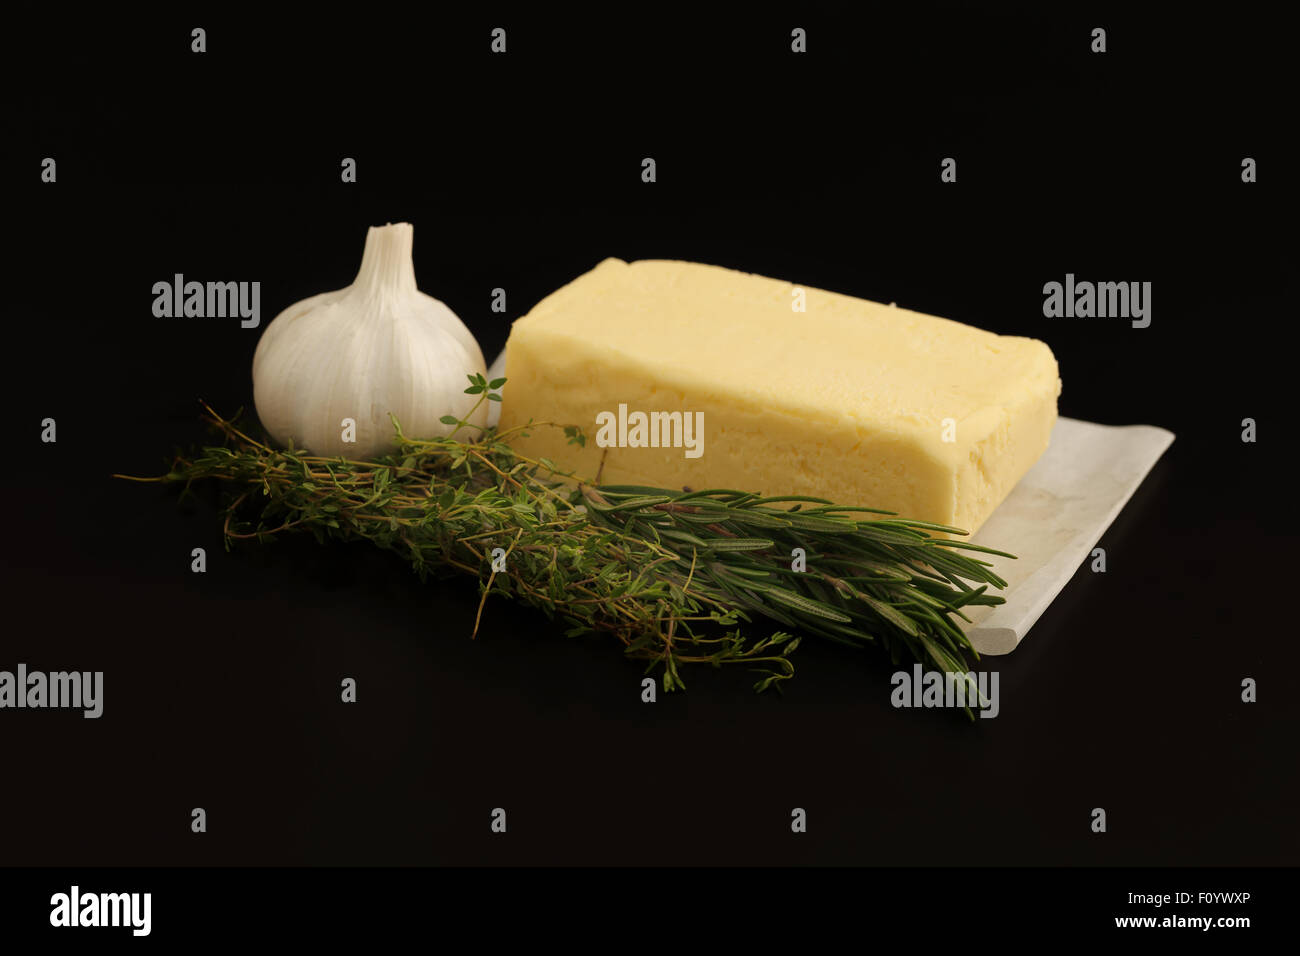 compound butter ingredients herb thyme rosemary garlic fresh homemade italian food tasty - Stock Image